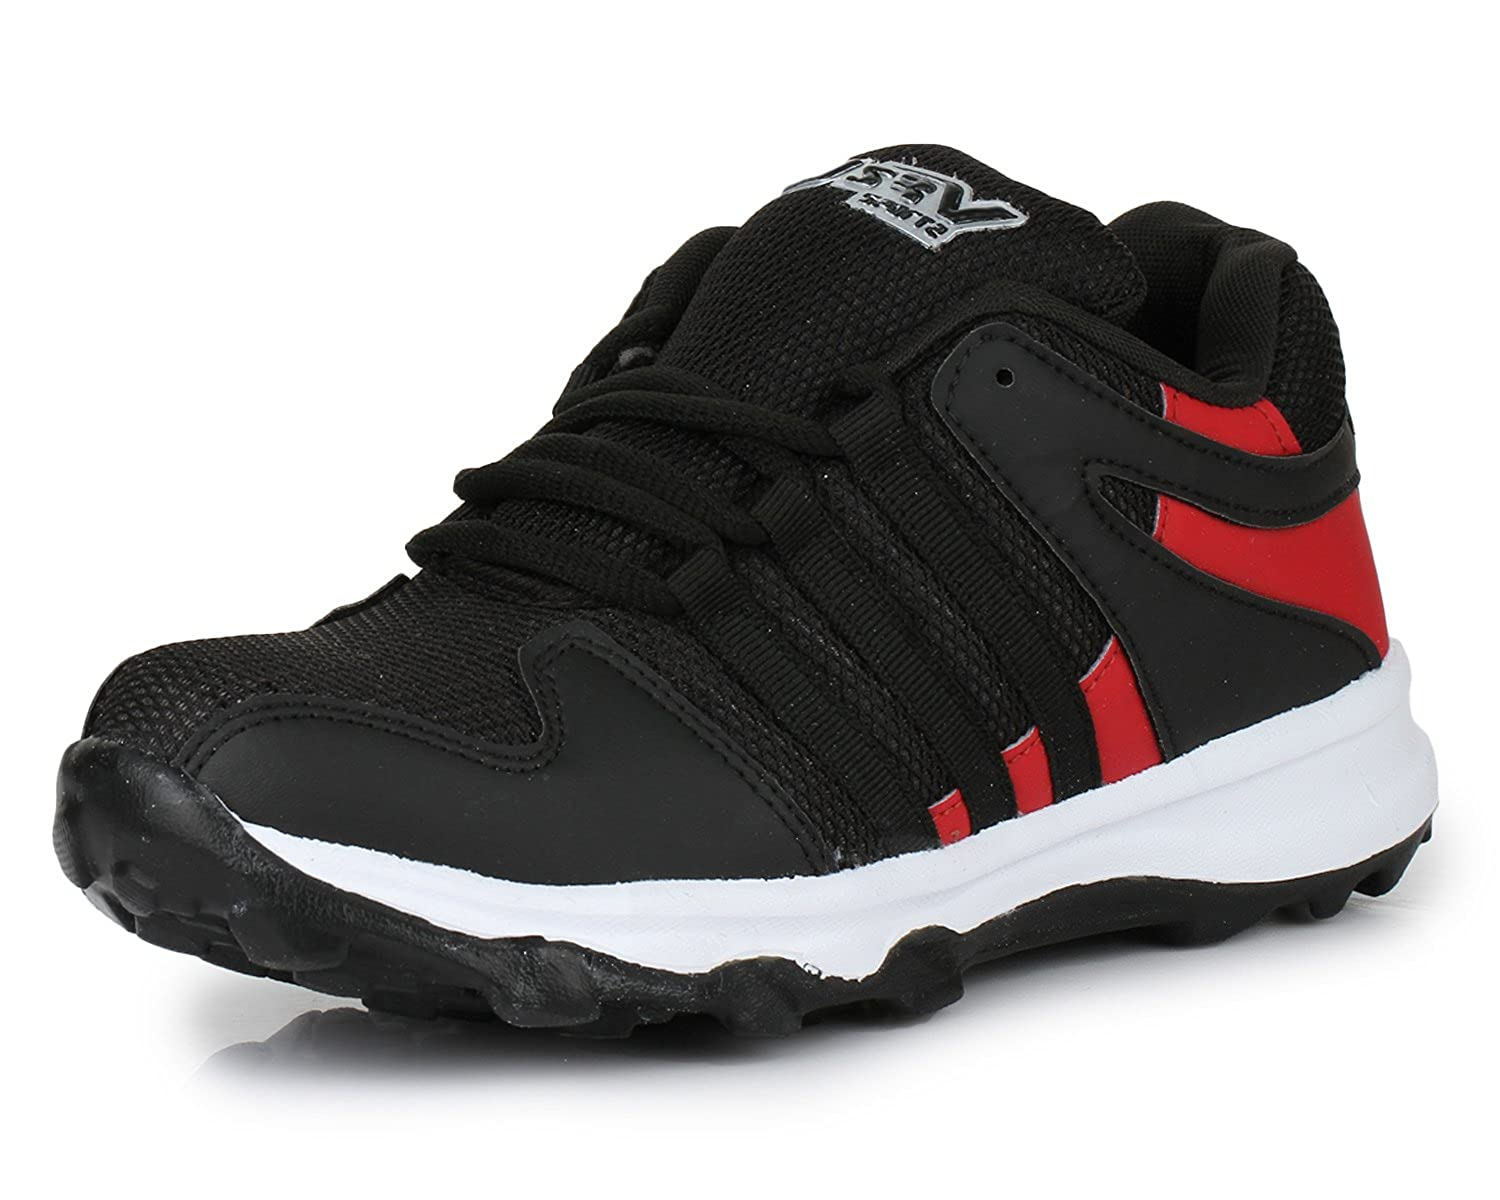 779df0c3554a TRASE SRV Oasis Men Sports Running Shoes: Buy Online at Low Prices in India  - Amazon.in